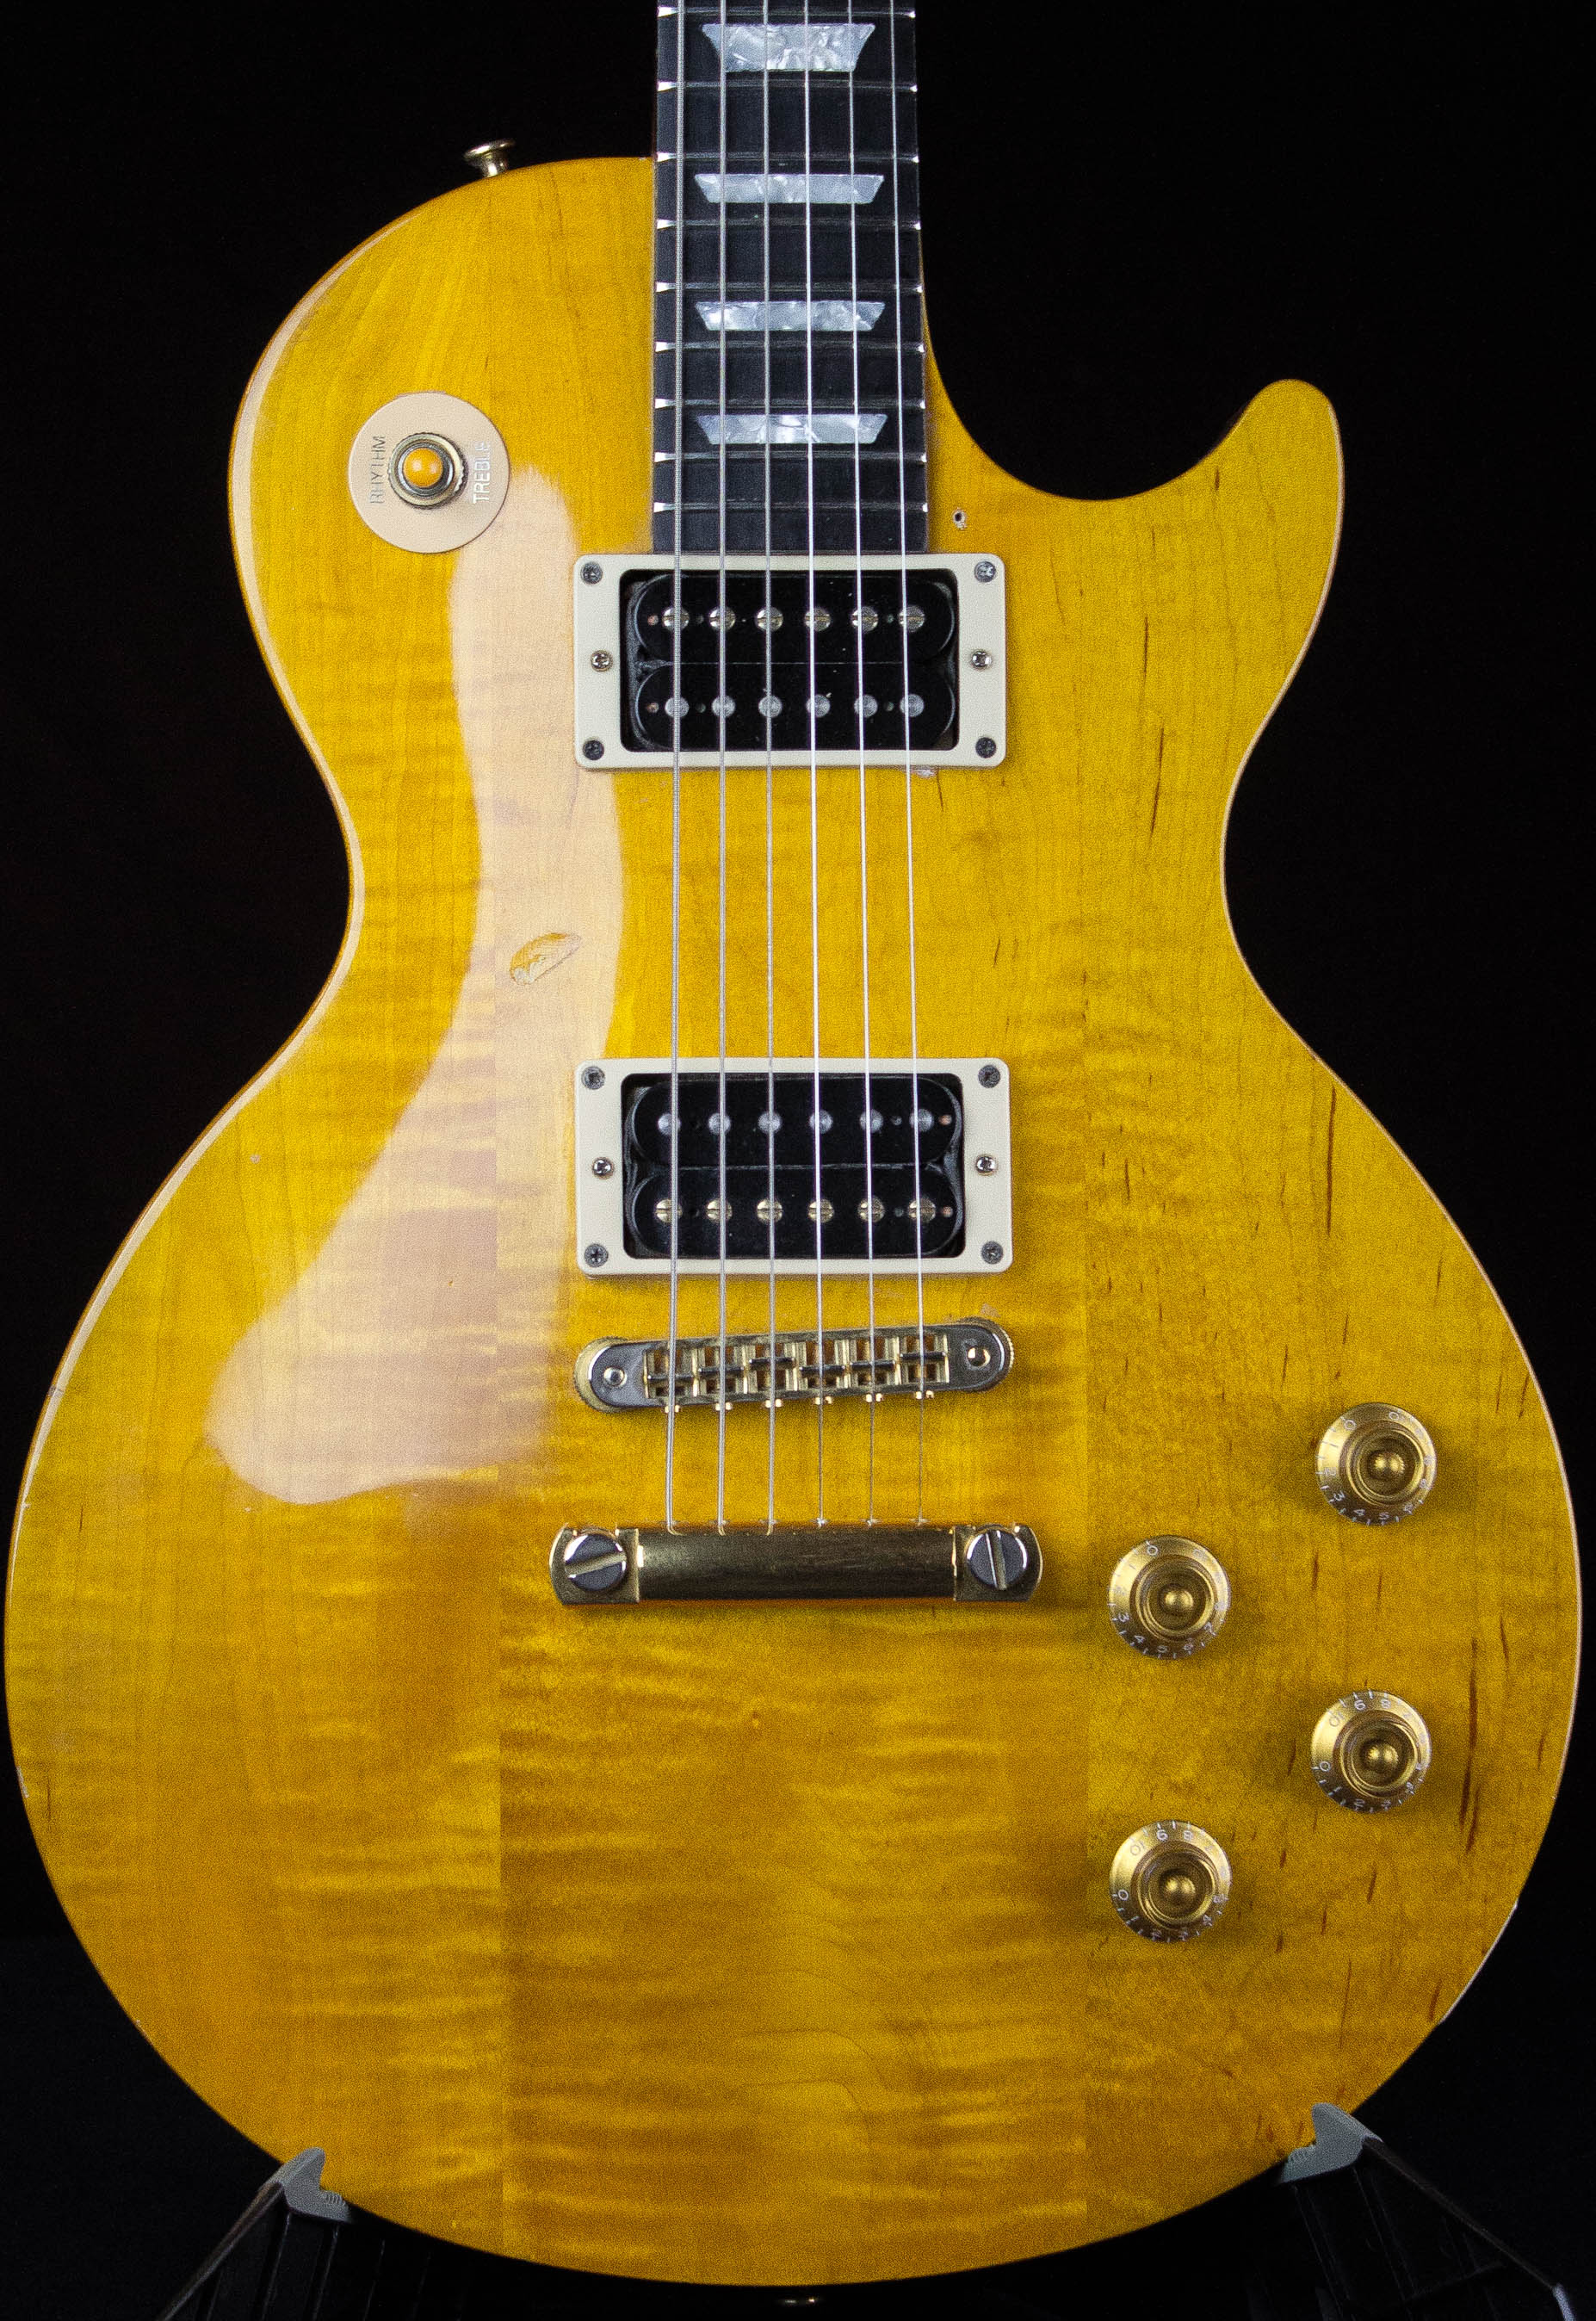 1992 gibson les paul studio lite trans amber guitar grlc1524. Black Bedroom Furniture Sets. Home Design Ideas